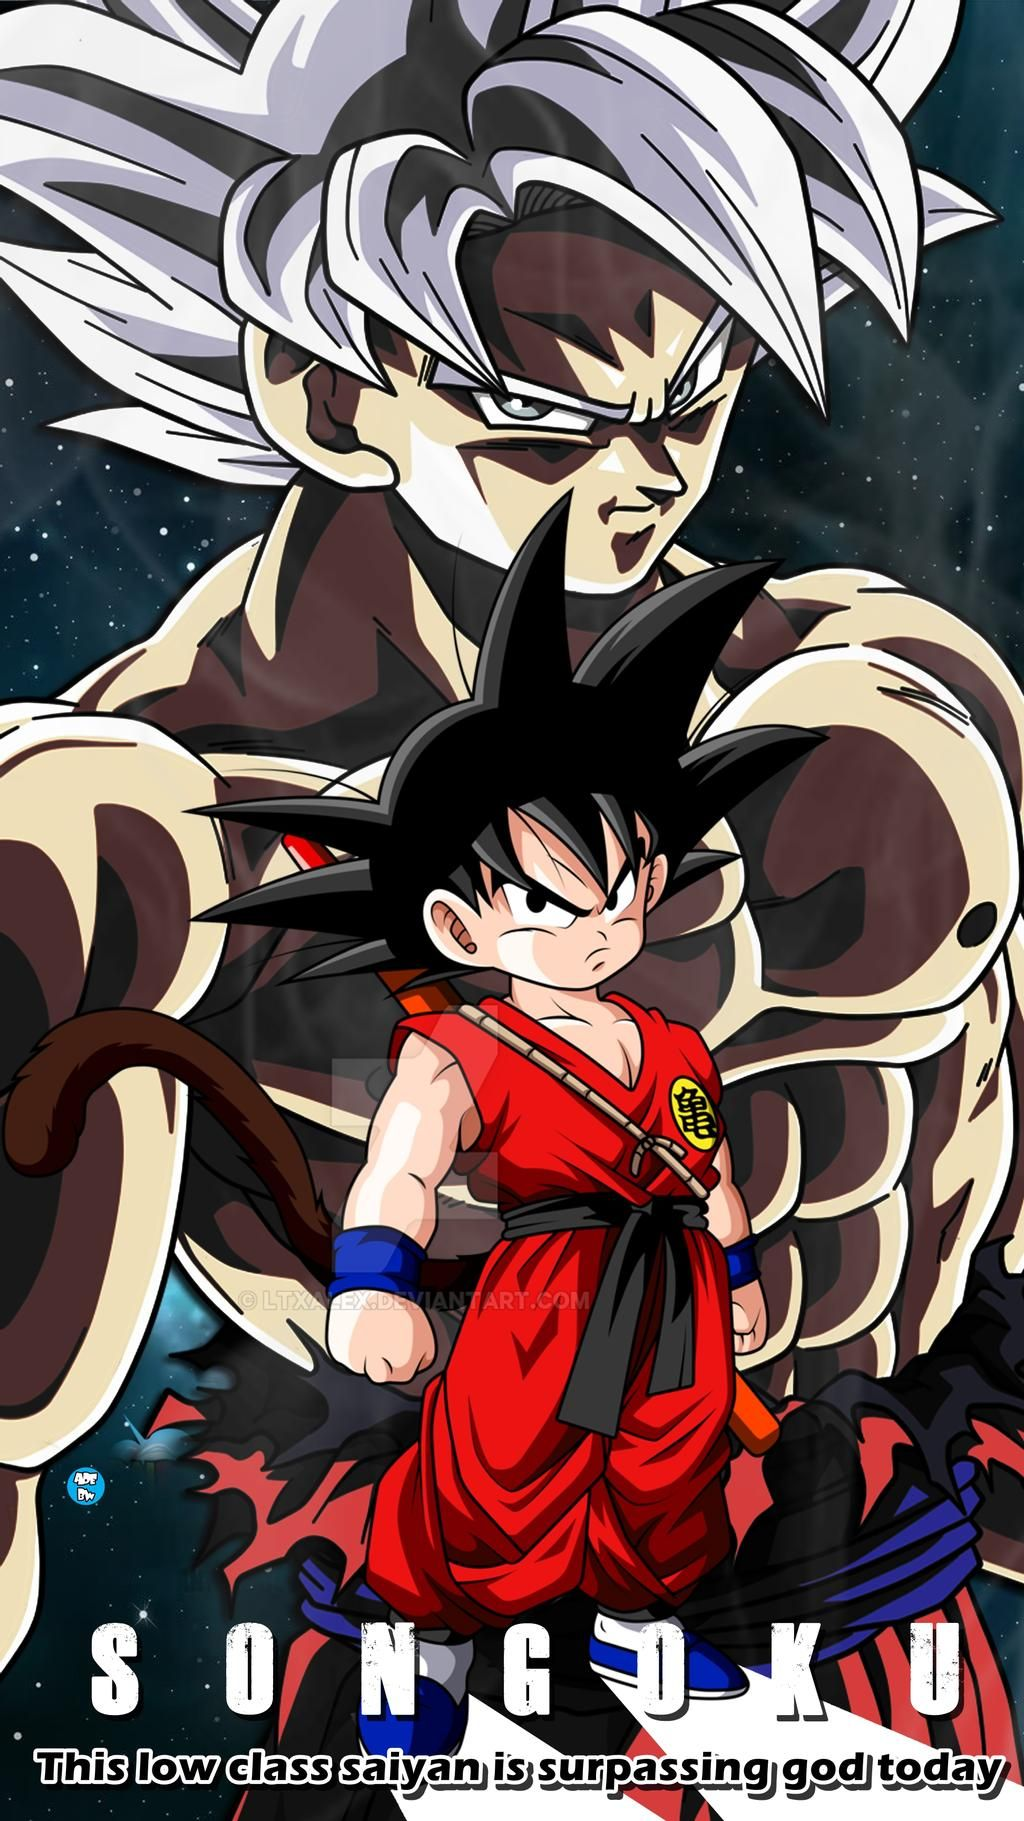 A Prince of Saiyan Defeating A God of Destruction by adb3388 on DeviantArt